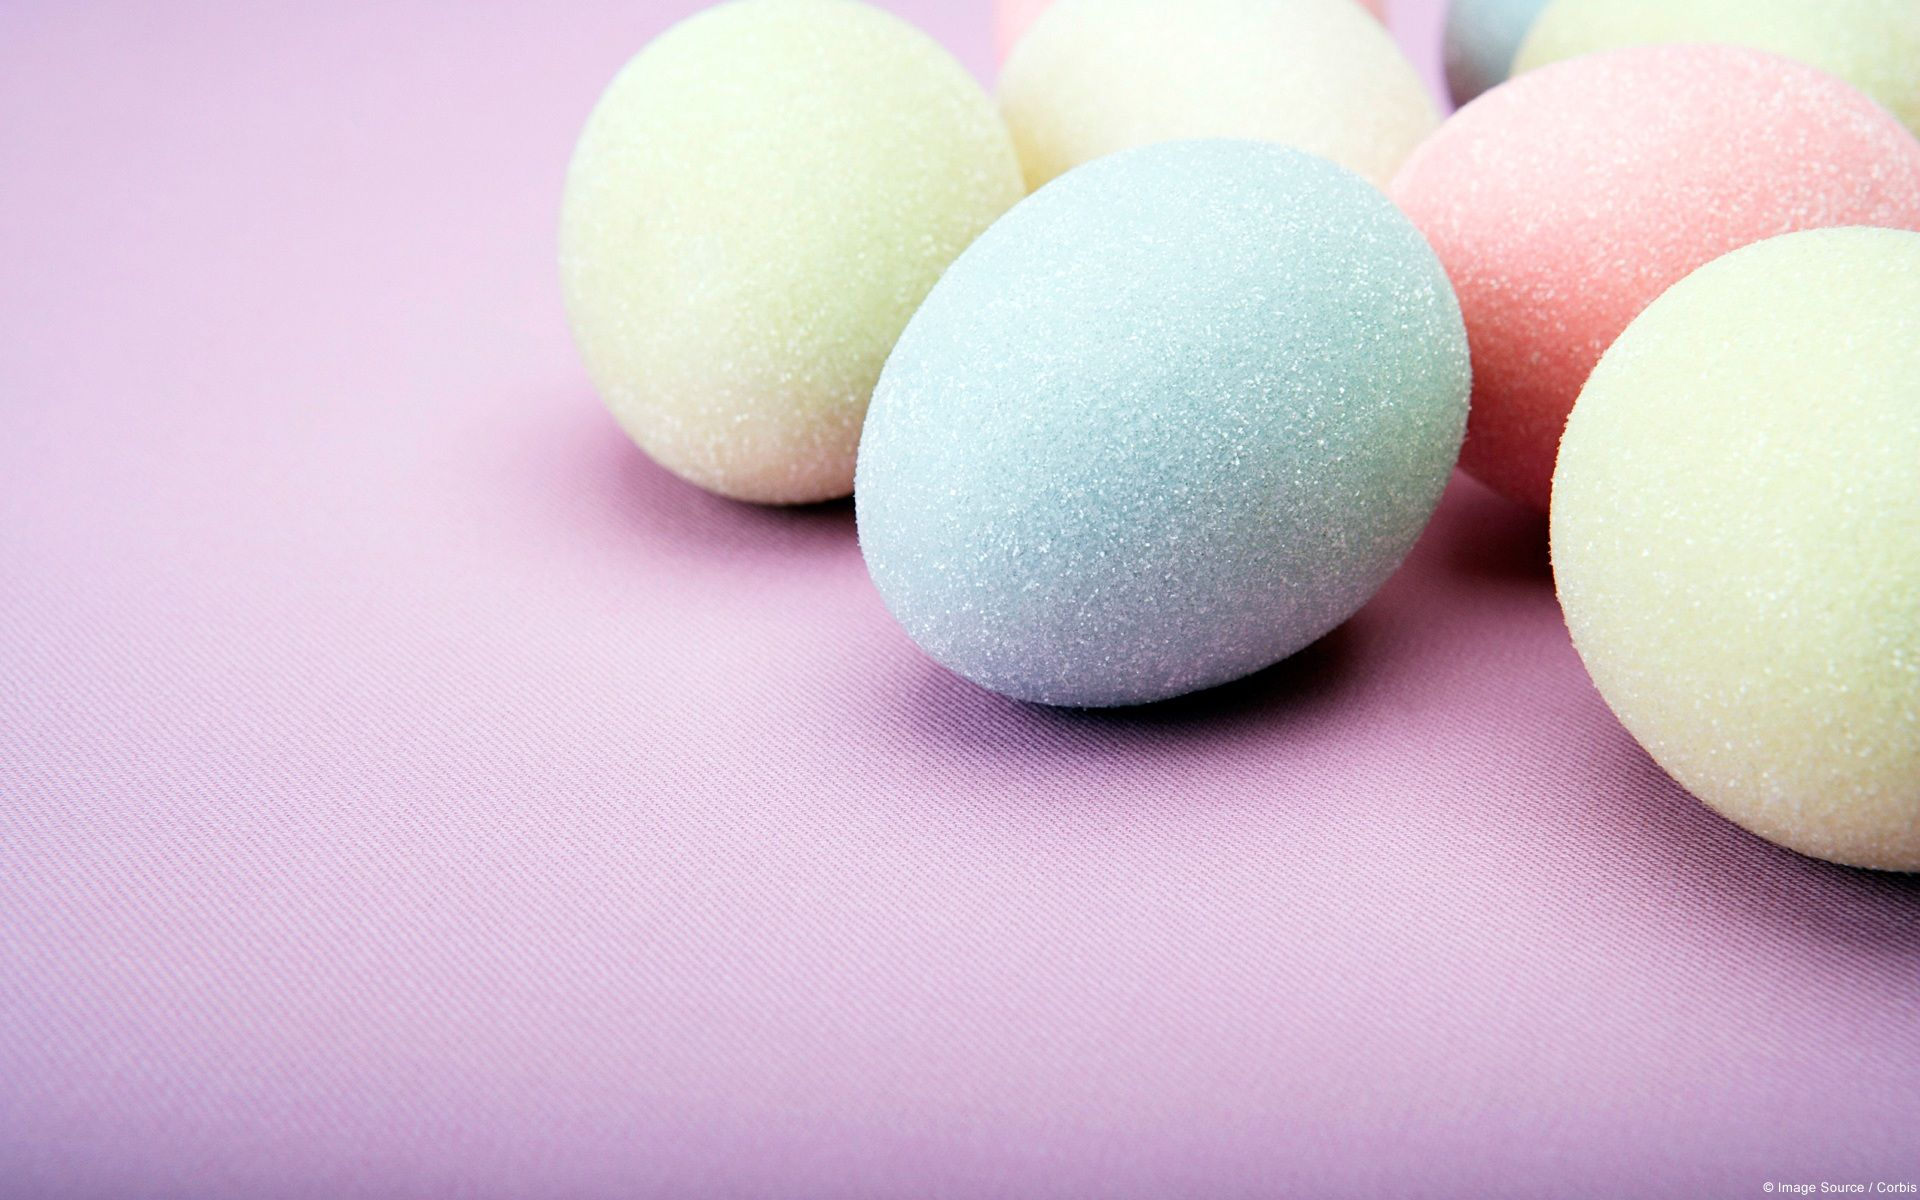 Pastel Easter Egg Wallpapers Top Free Pastel Easter Egg